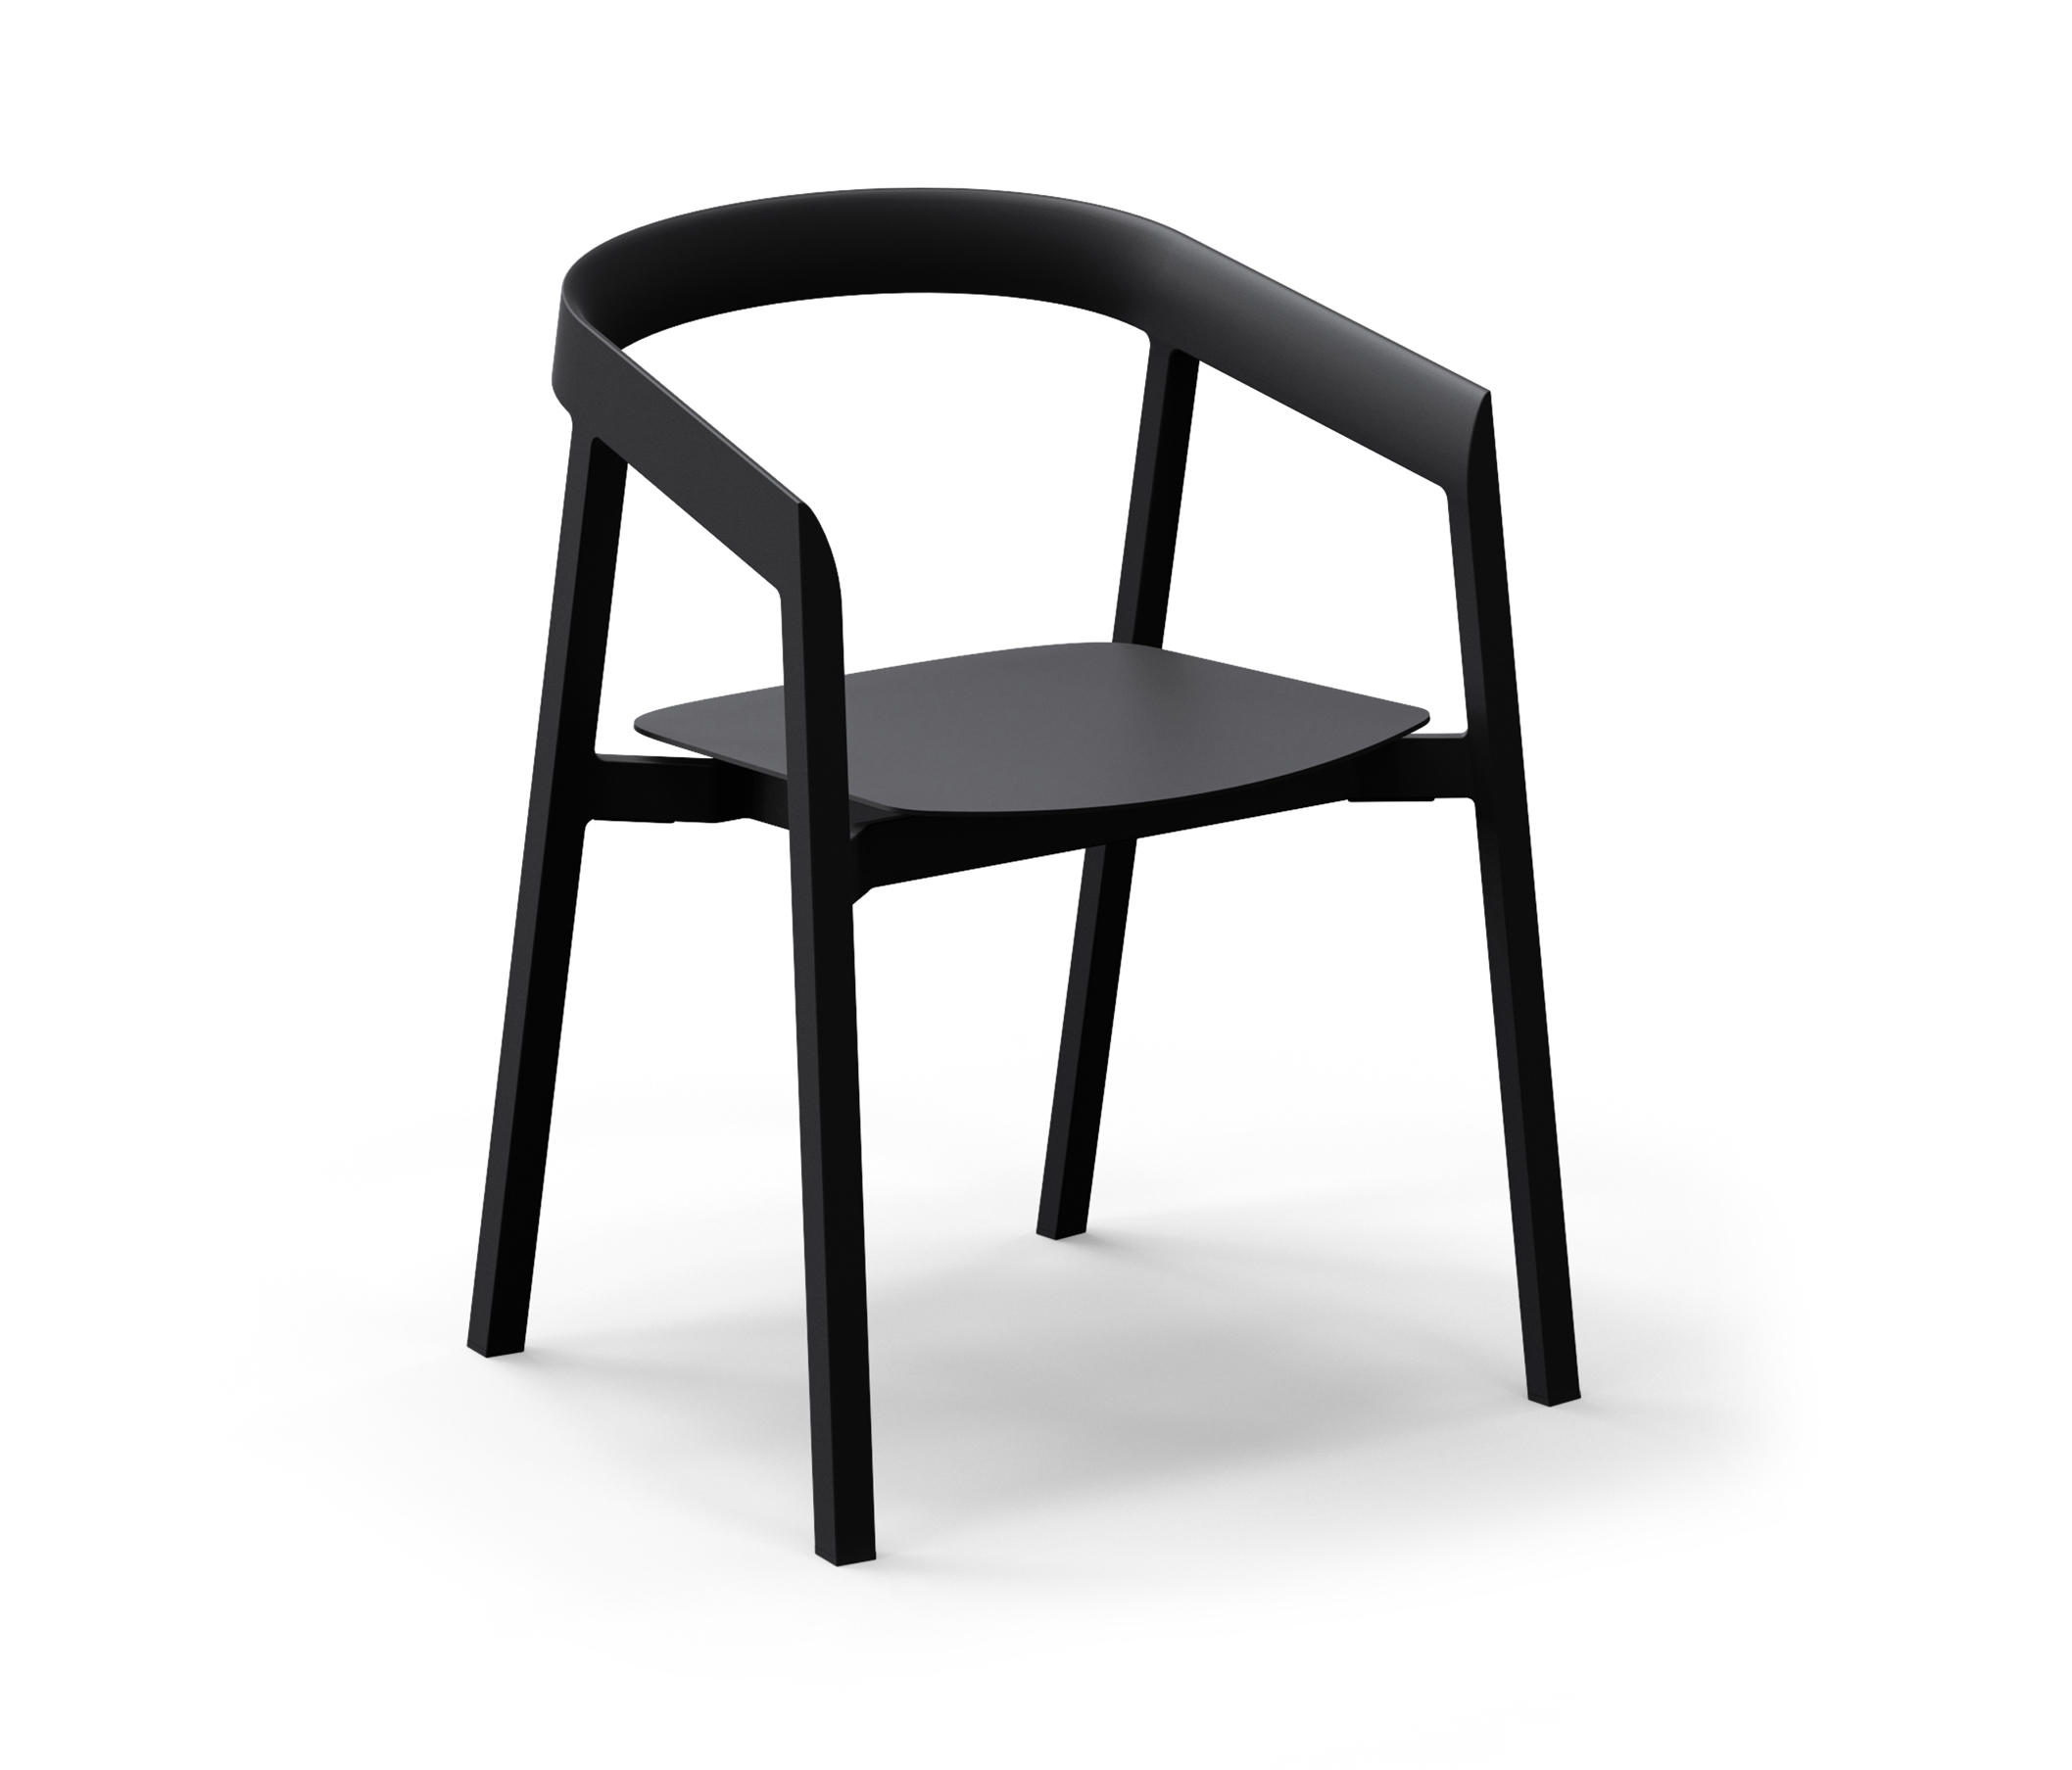 MORNINGTON DINING CHAIR WITH ALUMINIUM SEAT Restaurant chairs